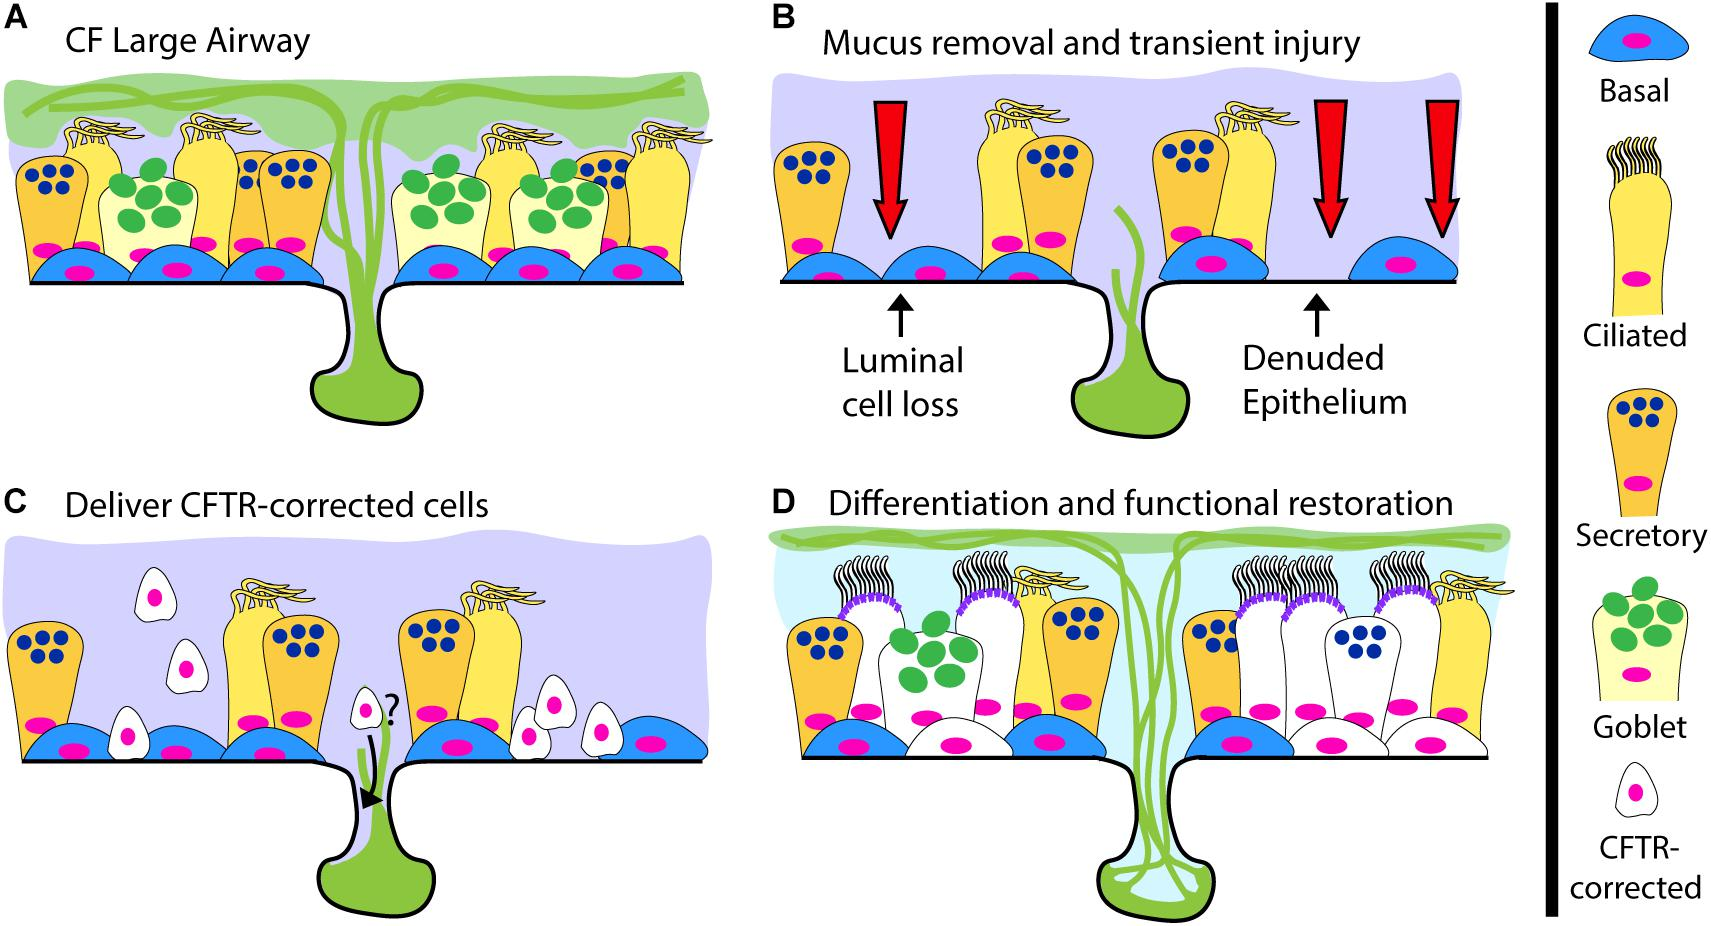 Frontiers | Challenges Facing Airway Epithelial Cell-Based